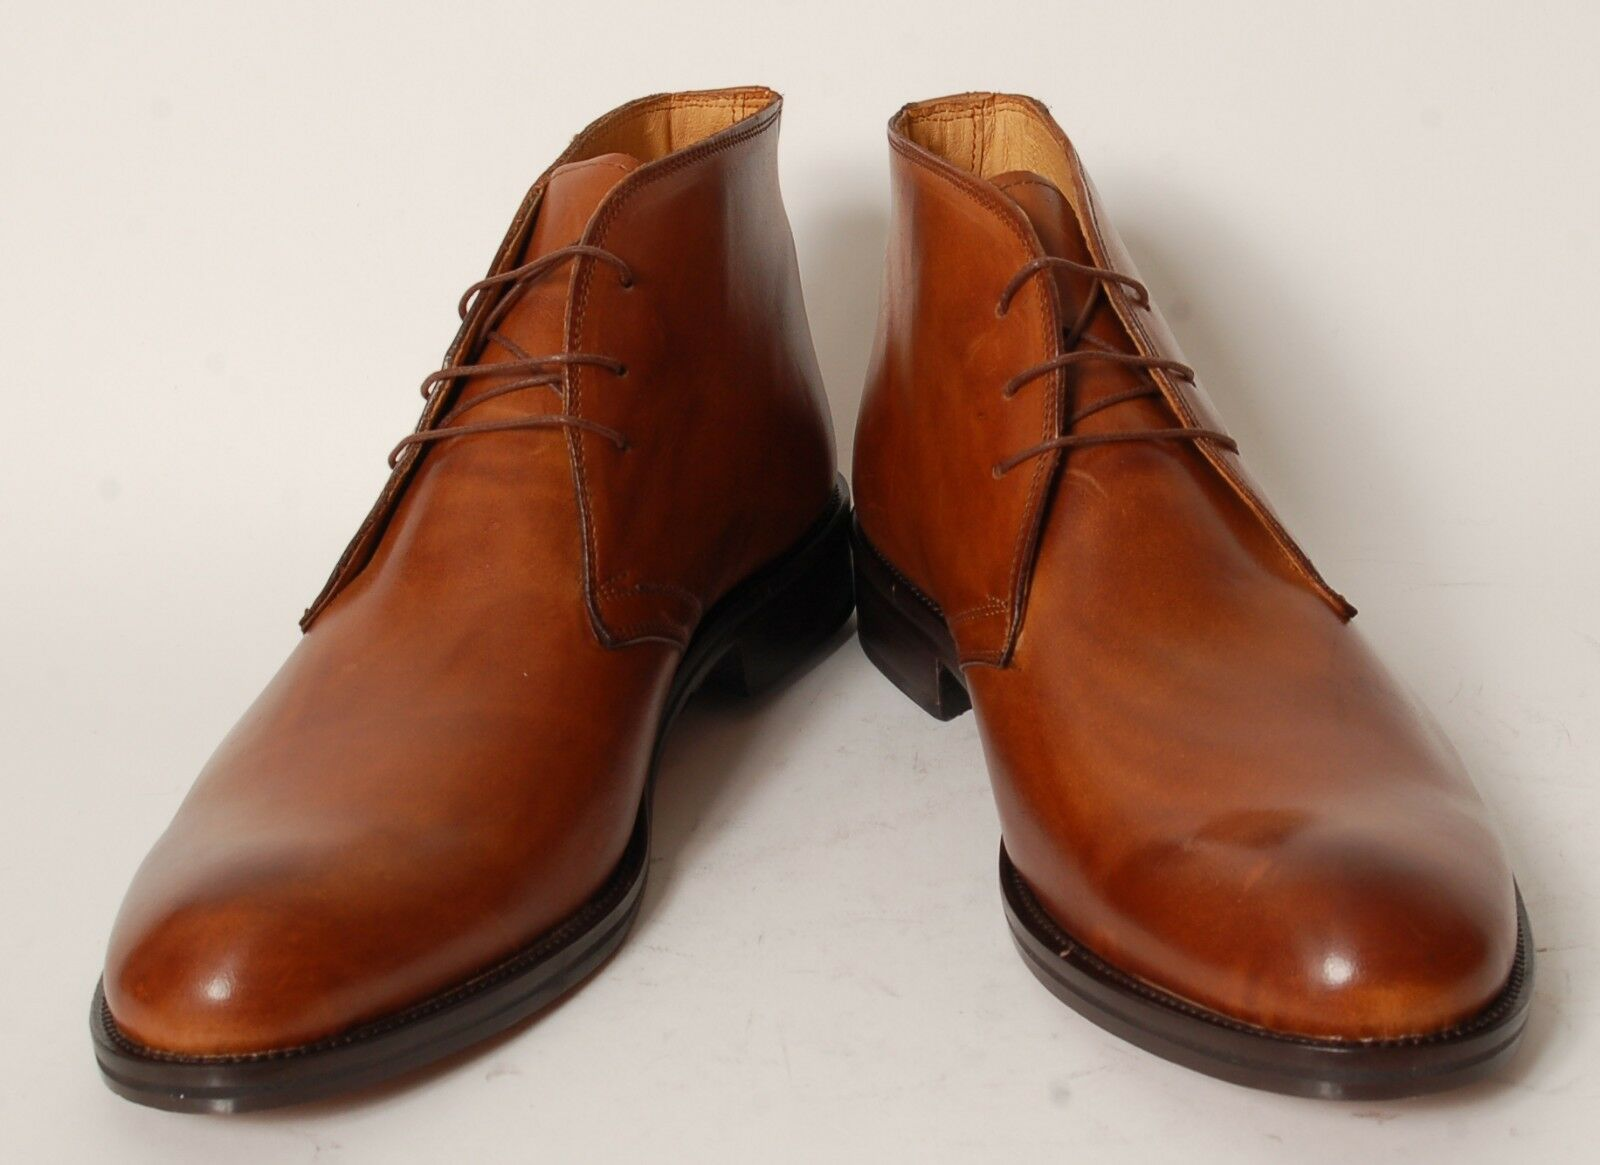 Acc Hand Made Italian, Half-Height Ankle Boots 9104A